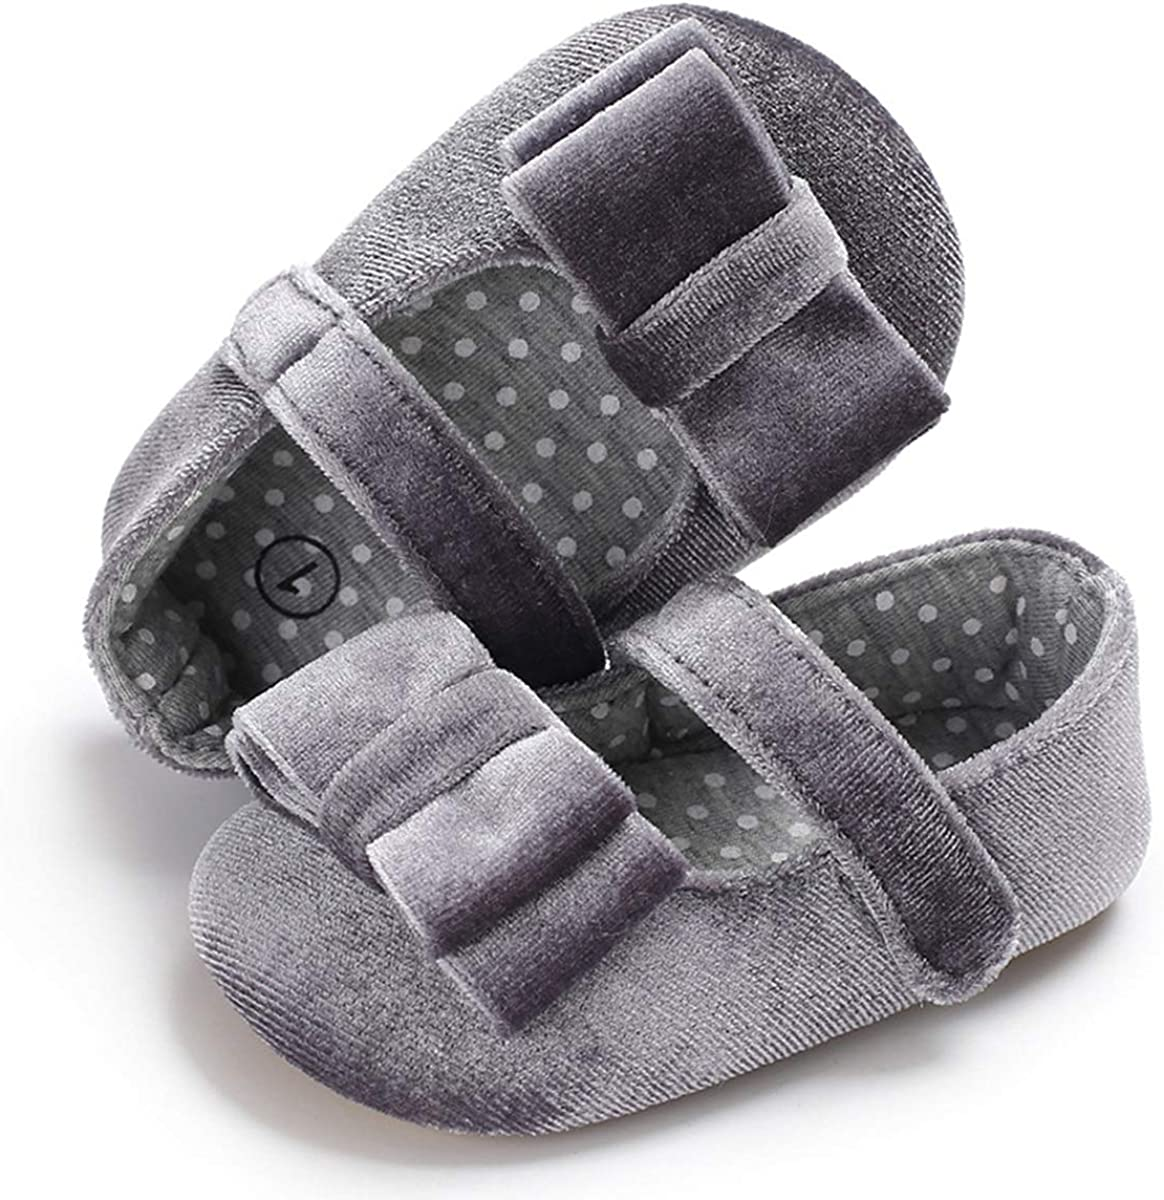 Baby Girl Mary Jane Flats Princess Shoes with Bowknot,Non-Slip Rubber Sole Prewalker Shoes for Infant Toddler